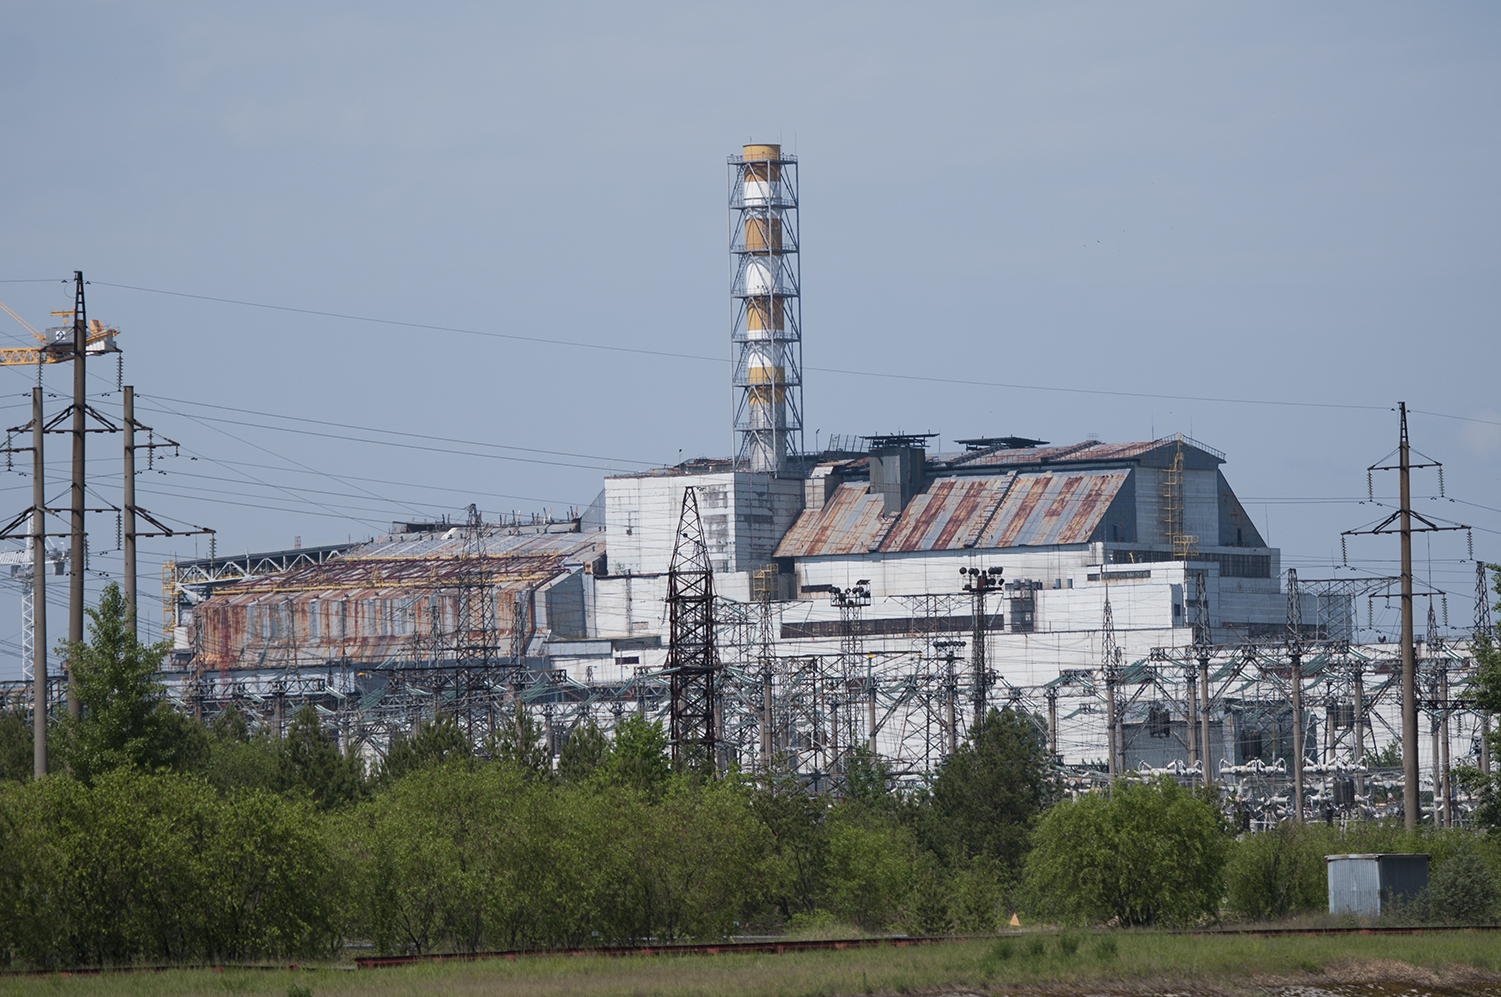 Reactor number 3 and 4 of the Chernobyl's nuclear power